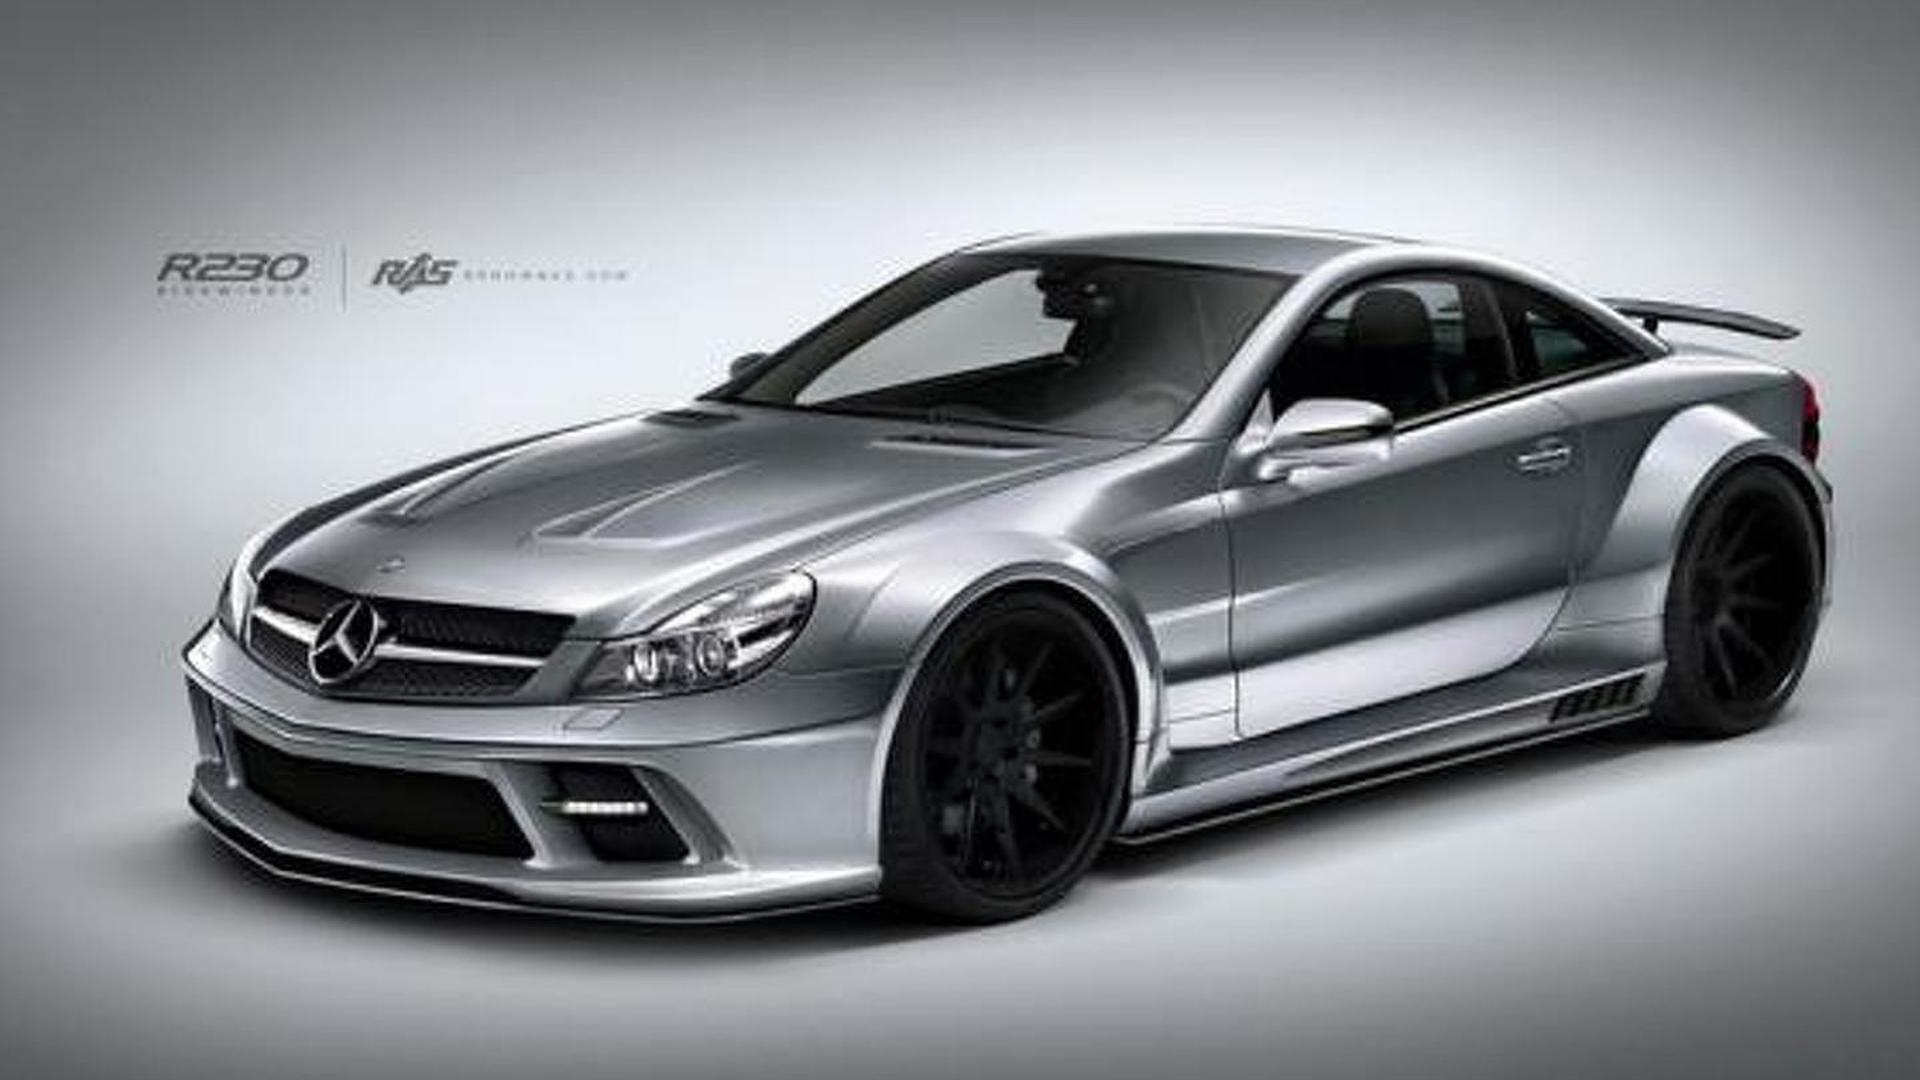 Renown Auto Style launches body kit for previous Mercedes-Benz SL